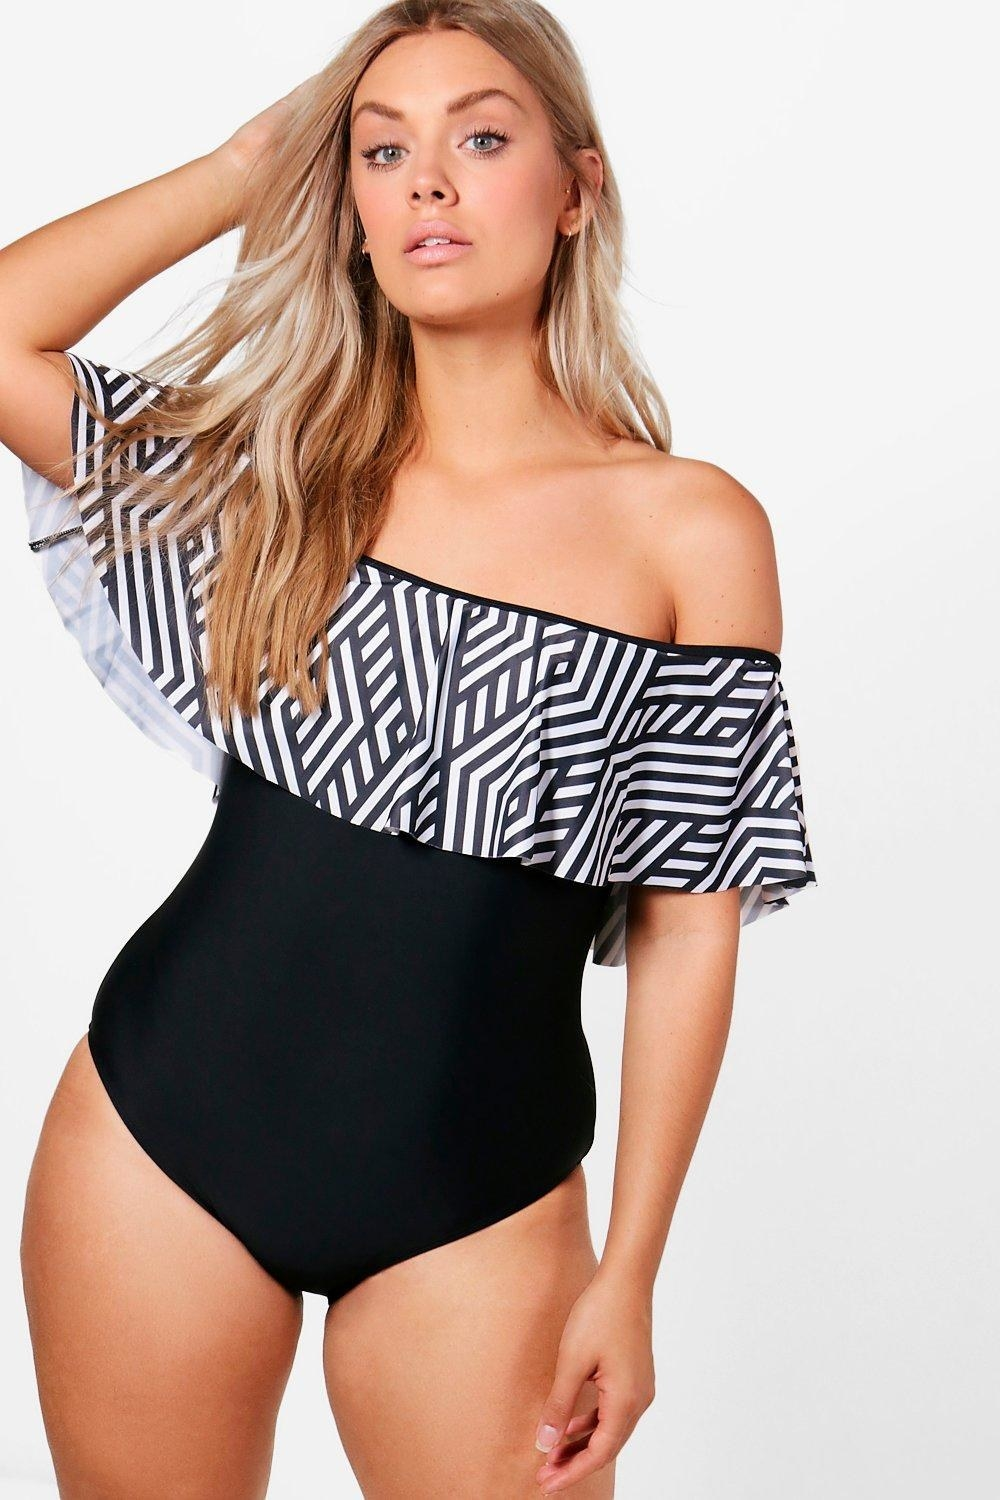 cfdd4cef0cb 25 Of The Best Places To Buy Plus-Size Swimsuits Online